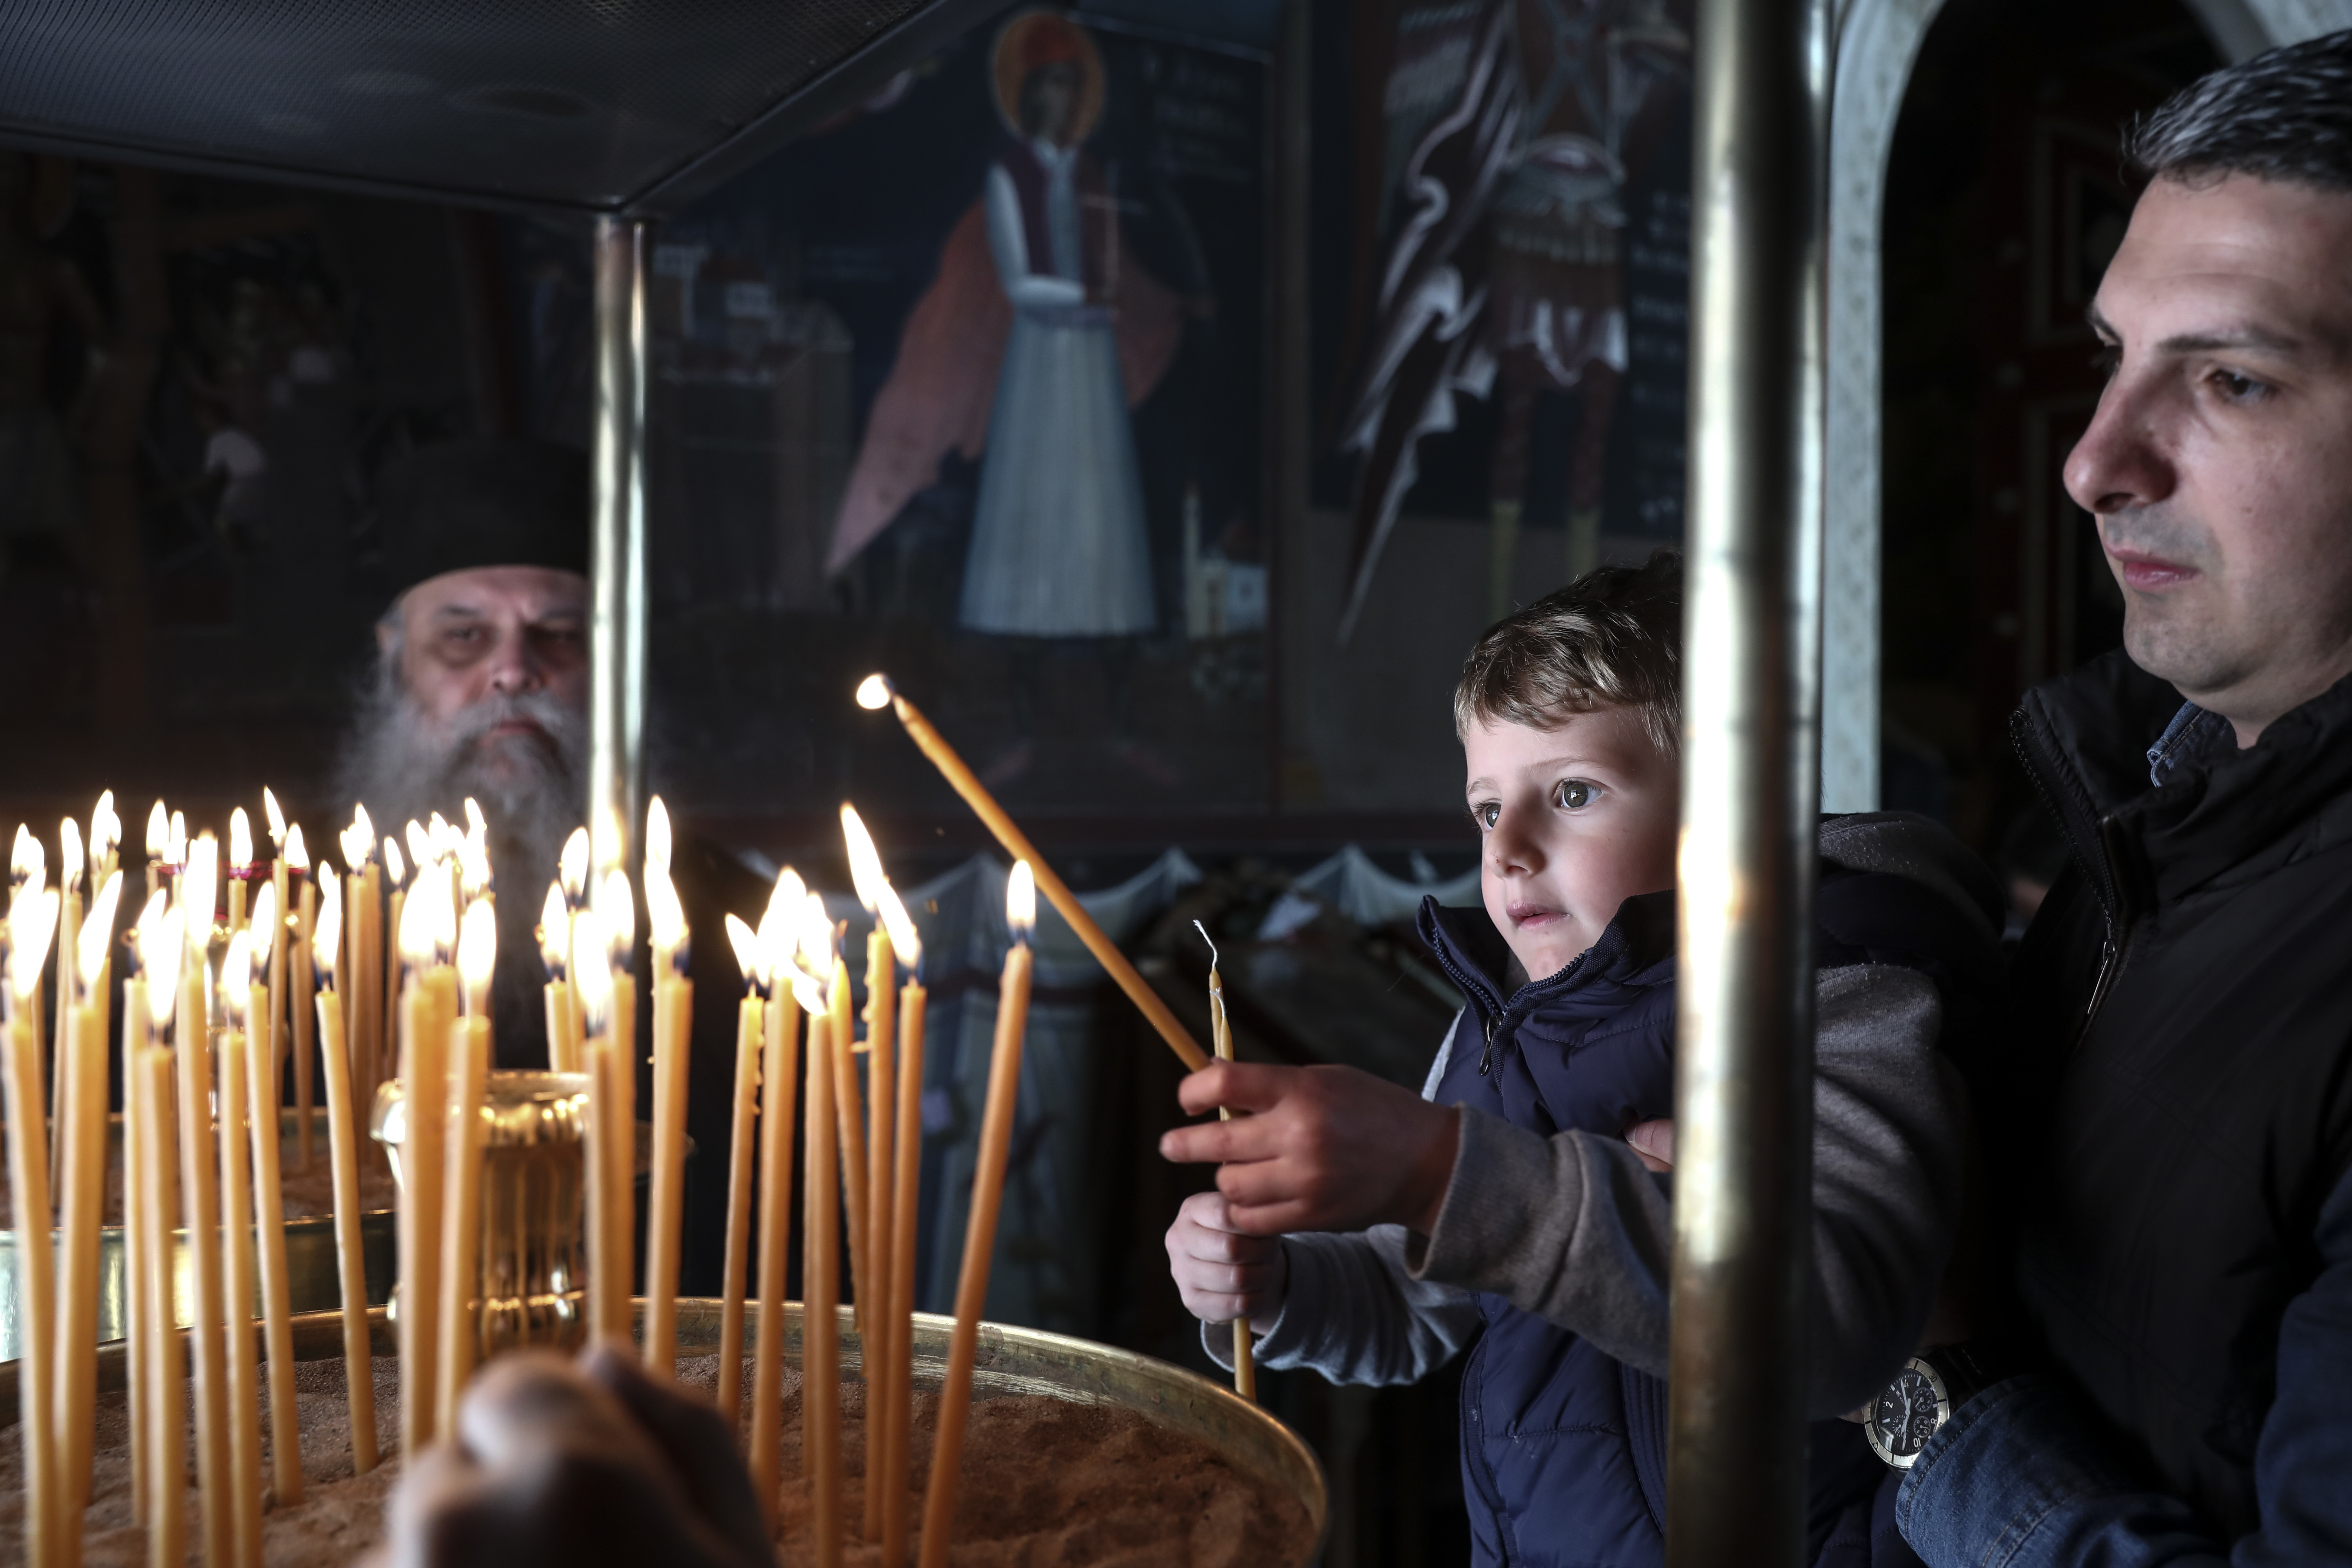 A boy lights a candle during a Good Friday Mass, at the Pendeli Monastery, near Athens, on Friday, April 6, 2018. Orthodox Christians around the world celebrate Easter on Sunday, April 8. (AP Photo/Yorgos Karahalis)